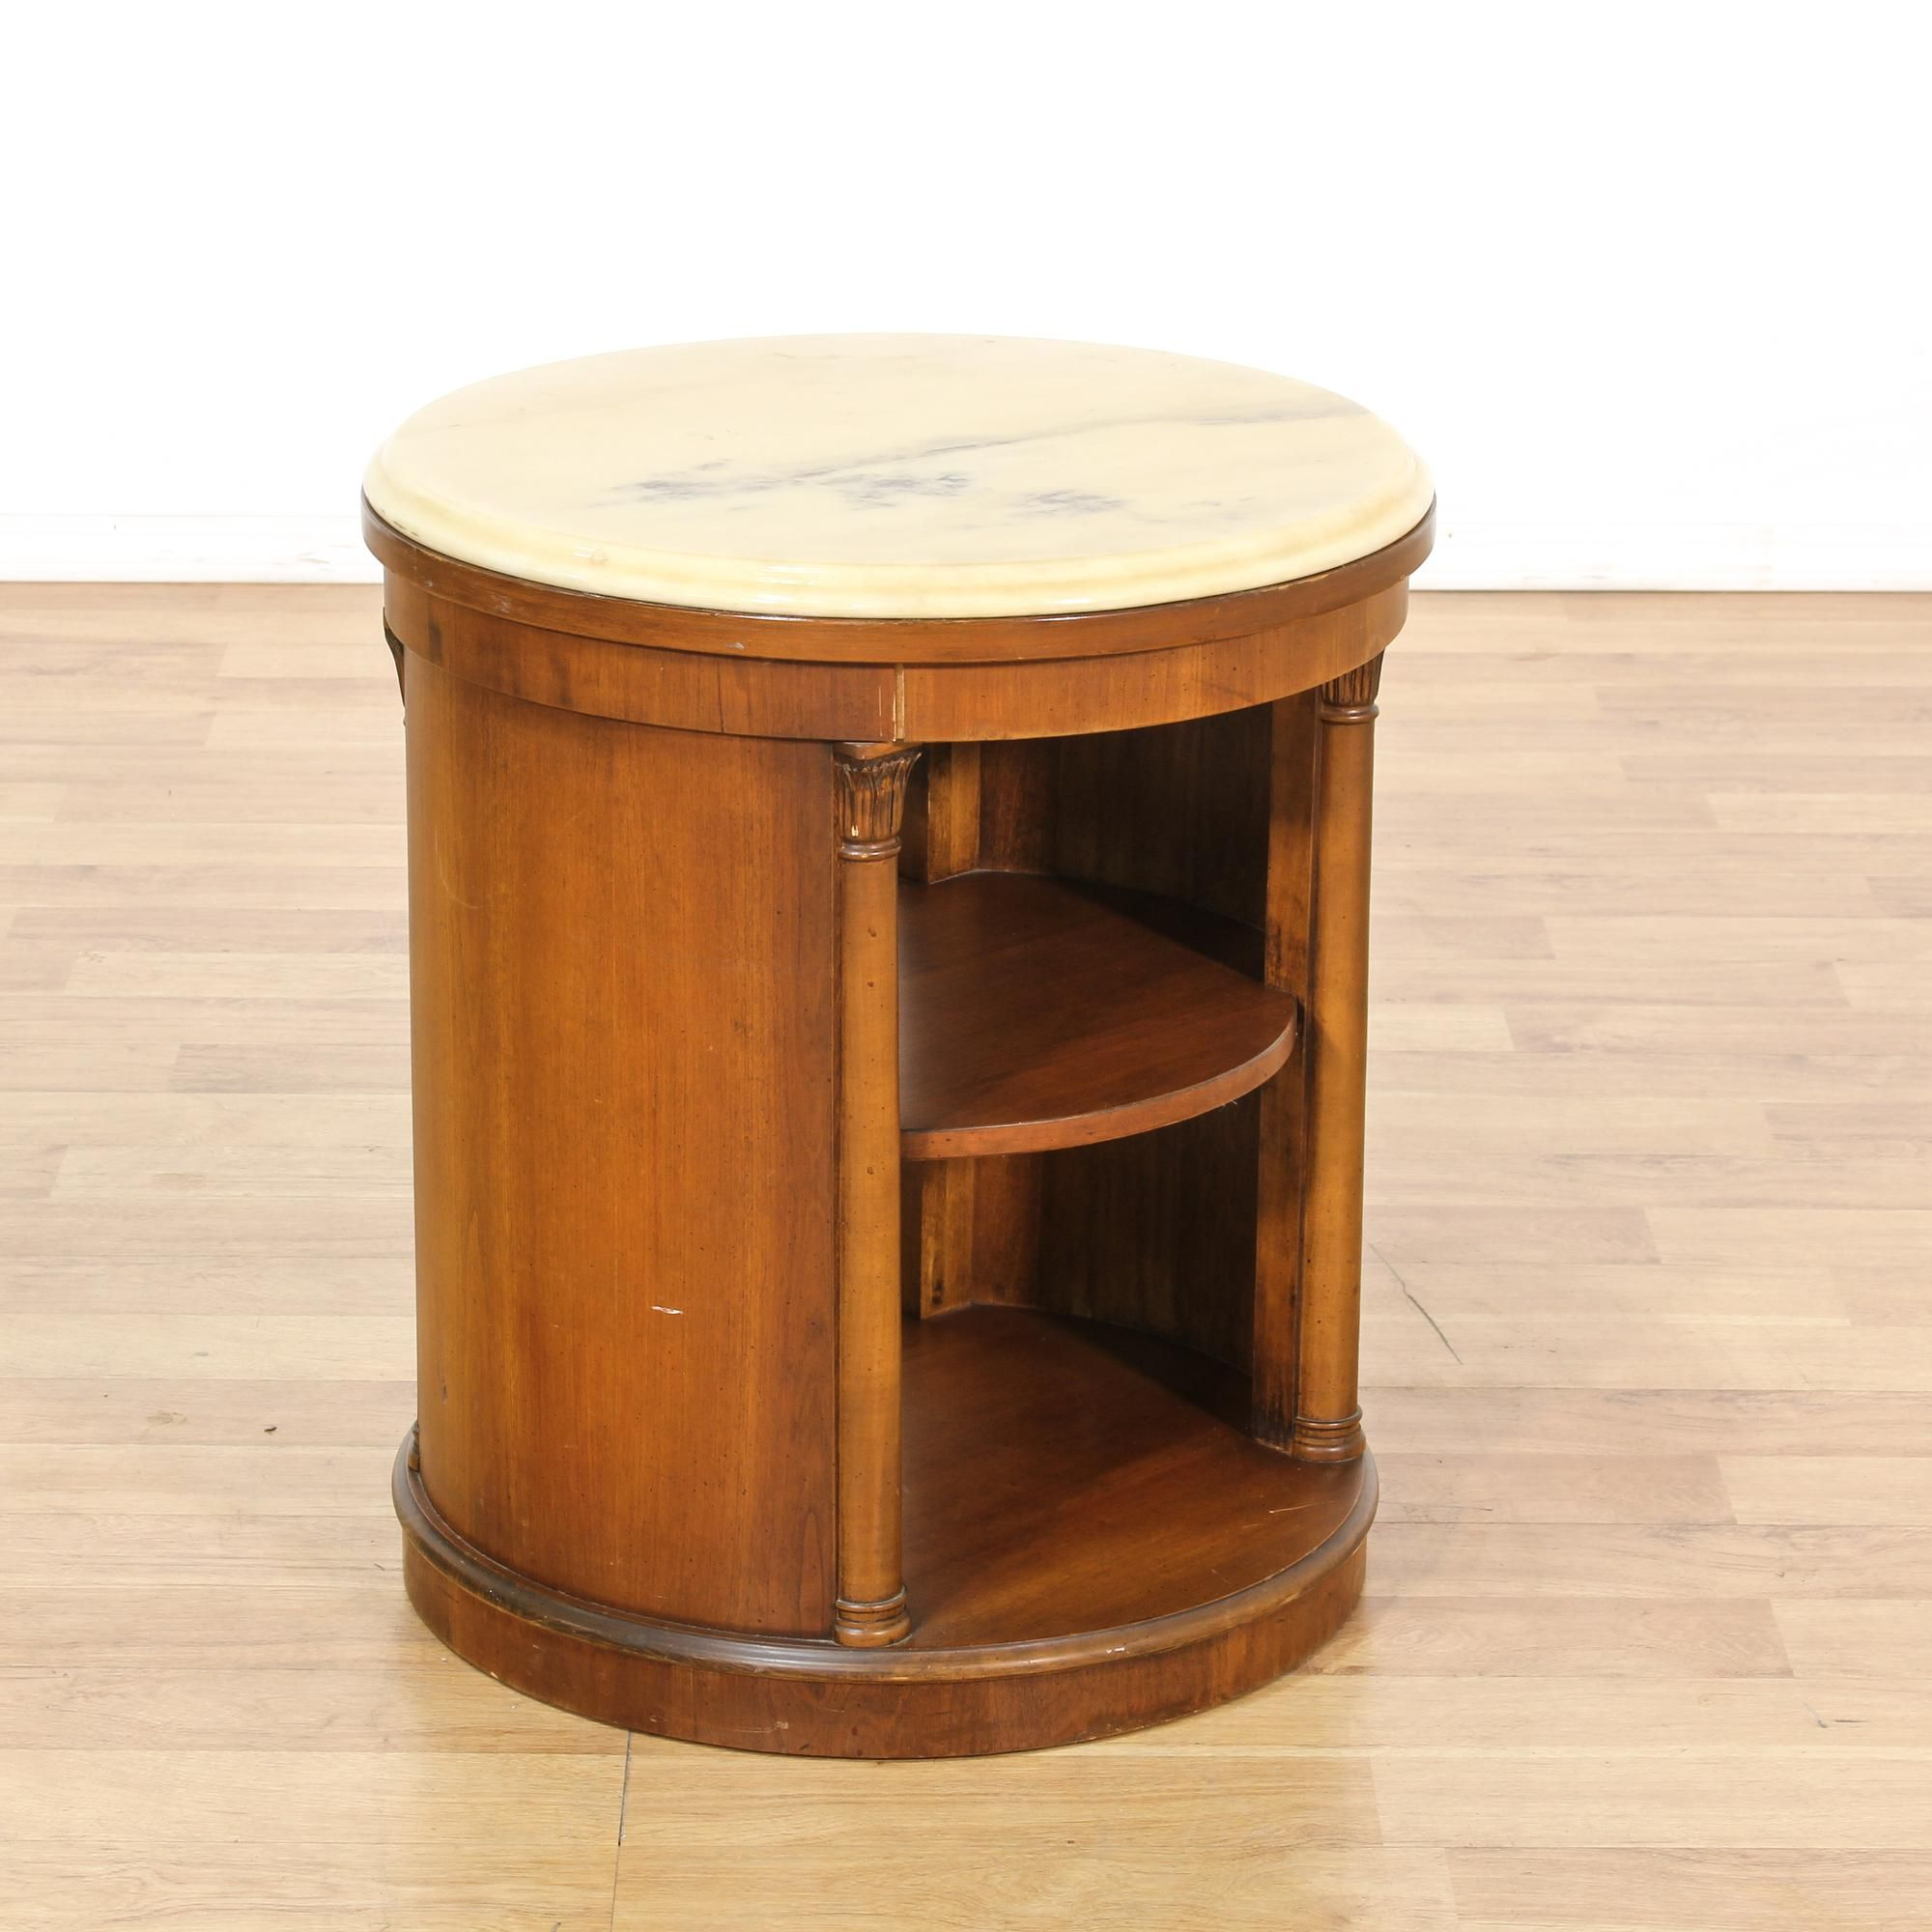 This Round End Table Is Featured In A Solid Wood With A Glossy Light Cherry  Finish